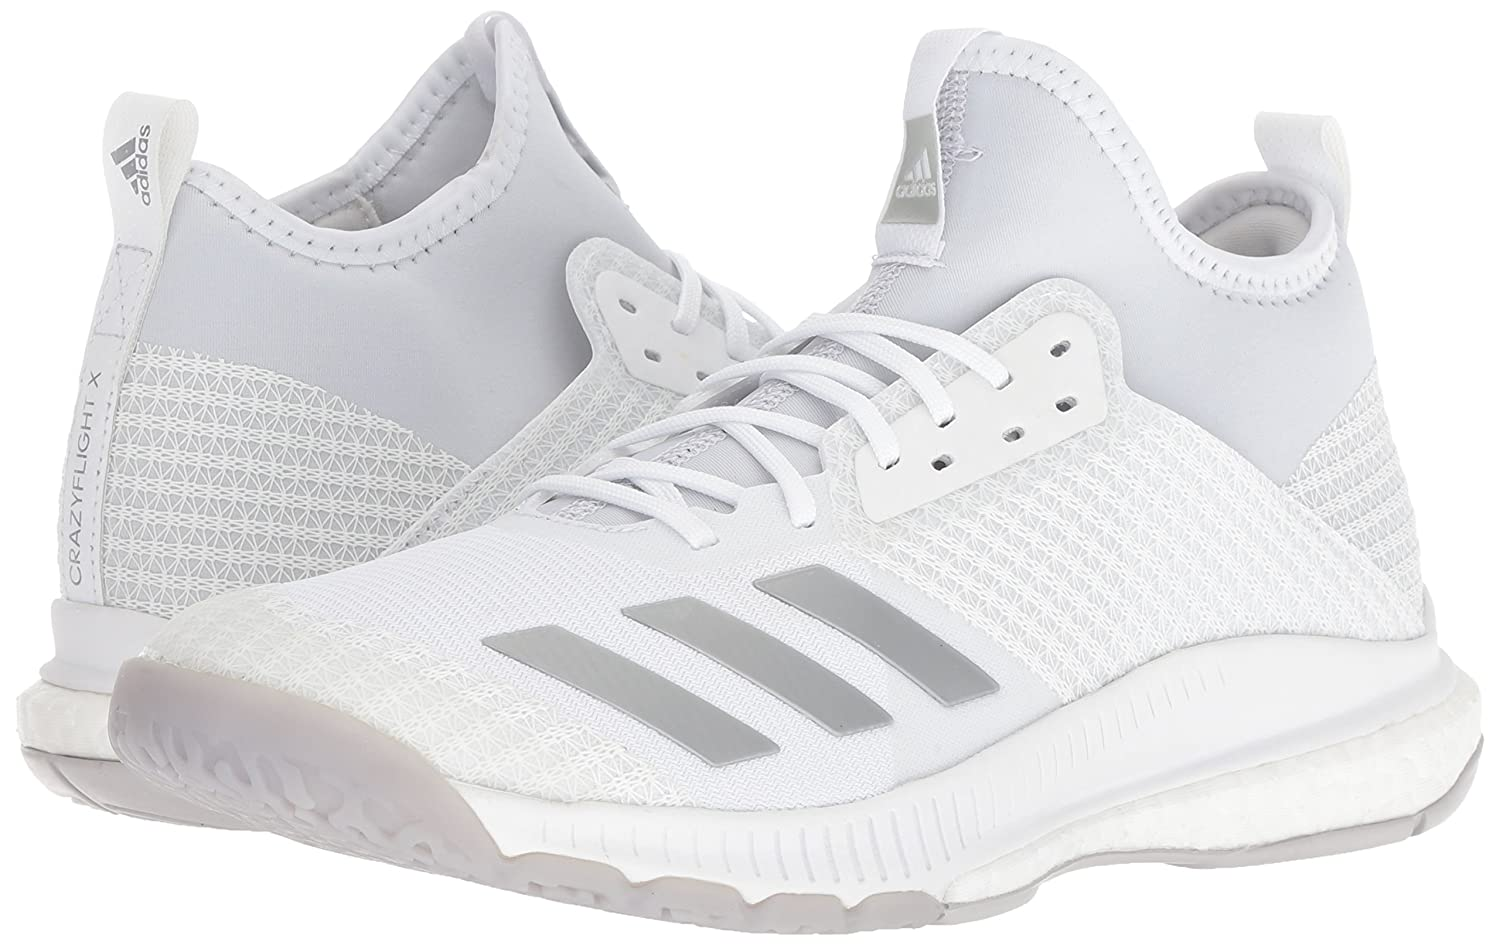 info for cbcf1 8a720 adidas Womens Crazyflight X 2 Mid Volleyball Shoe, WhiteSilver  MetallicGrey, 13.5 M US Amazon.fr Chaussures et Sacs